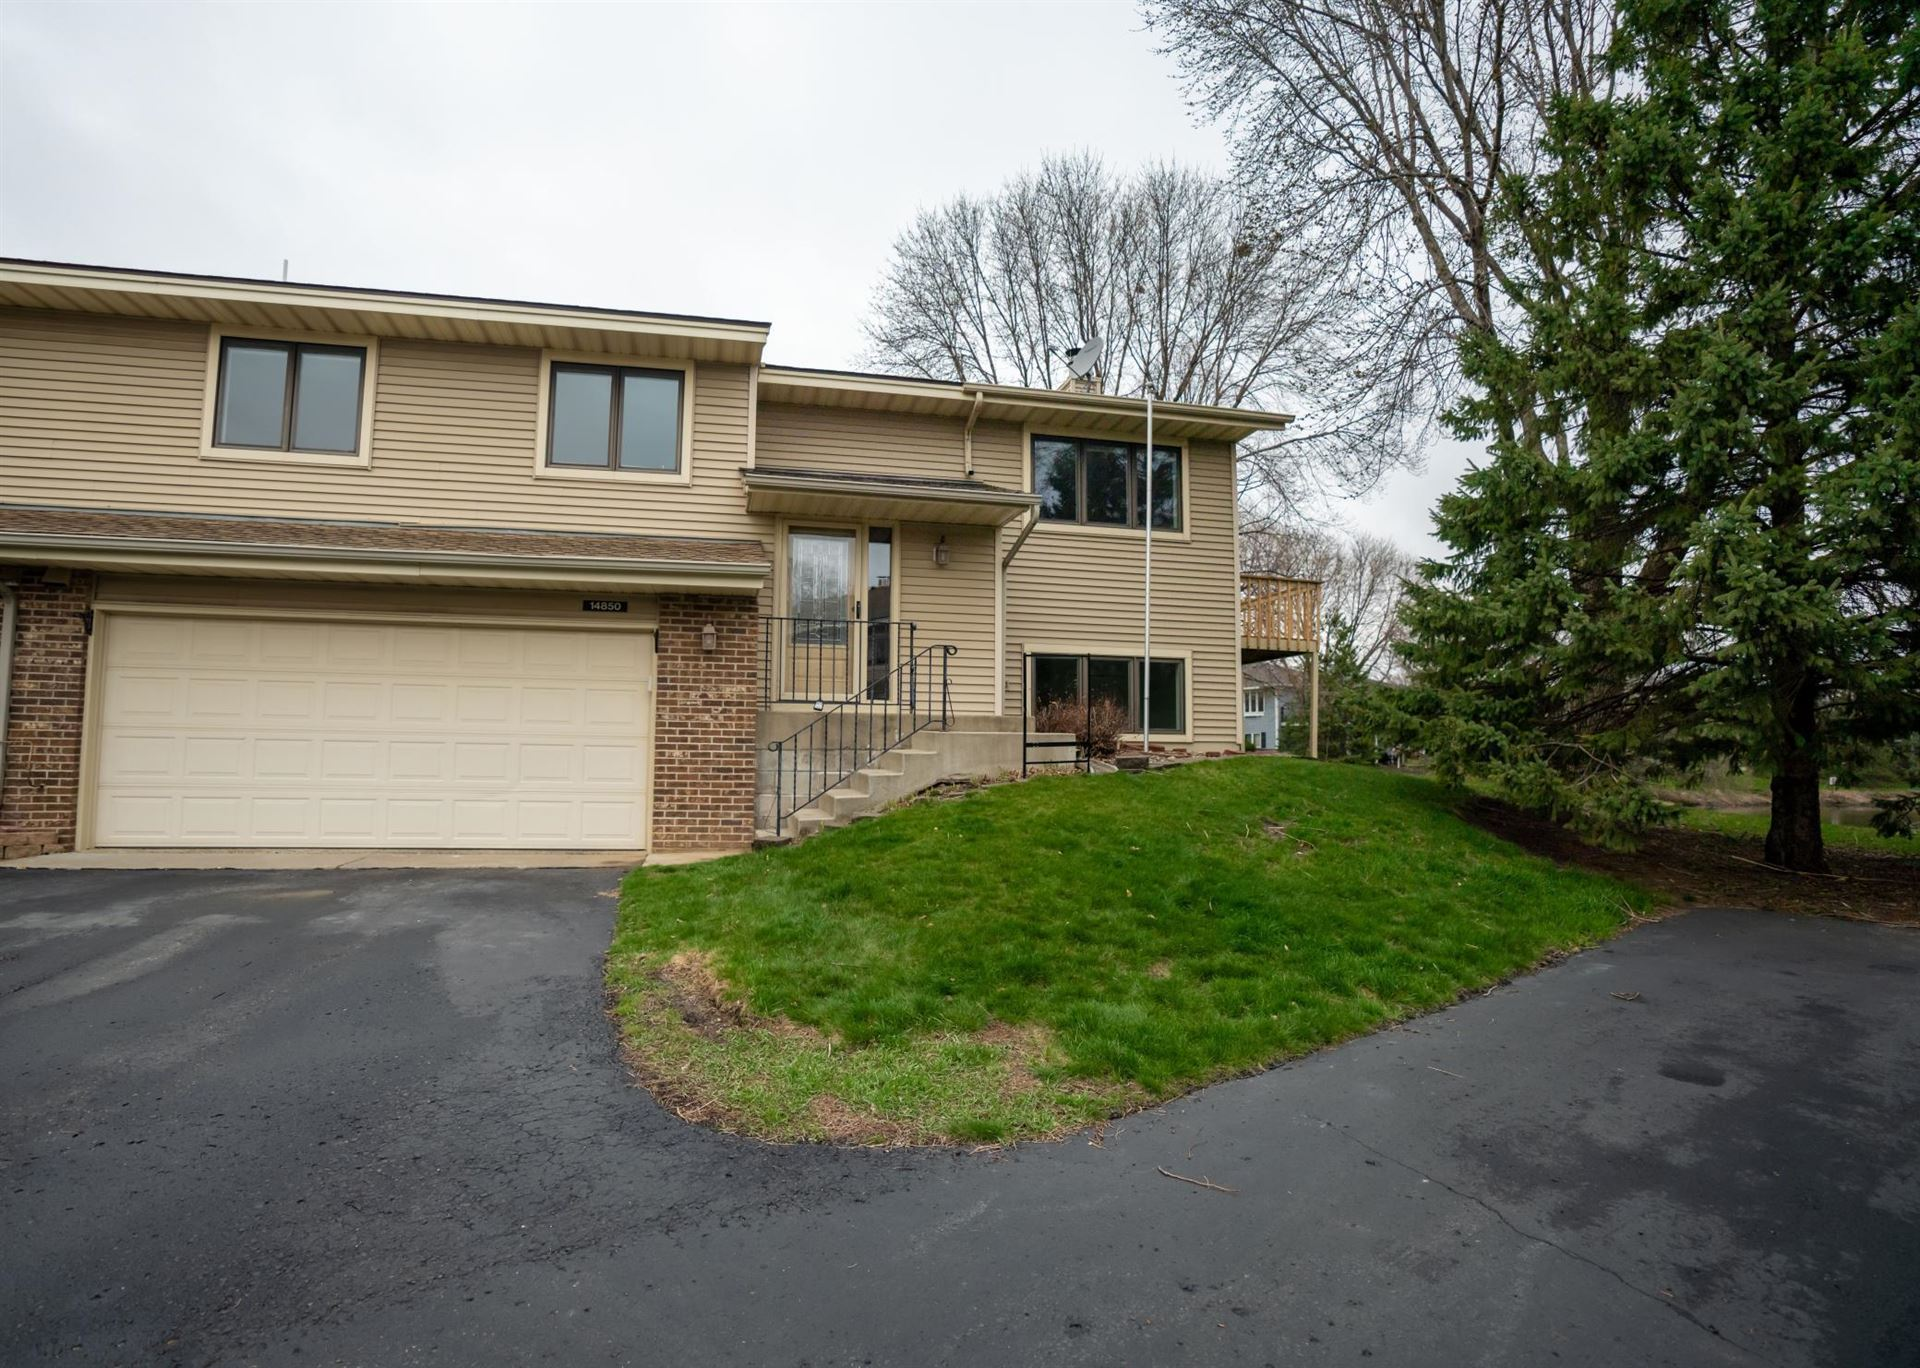 Photo of 14850 Endicott Way #21, Apple Valley, MN 55124 (MLS # 5698056)